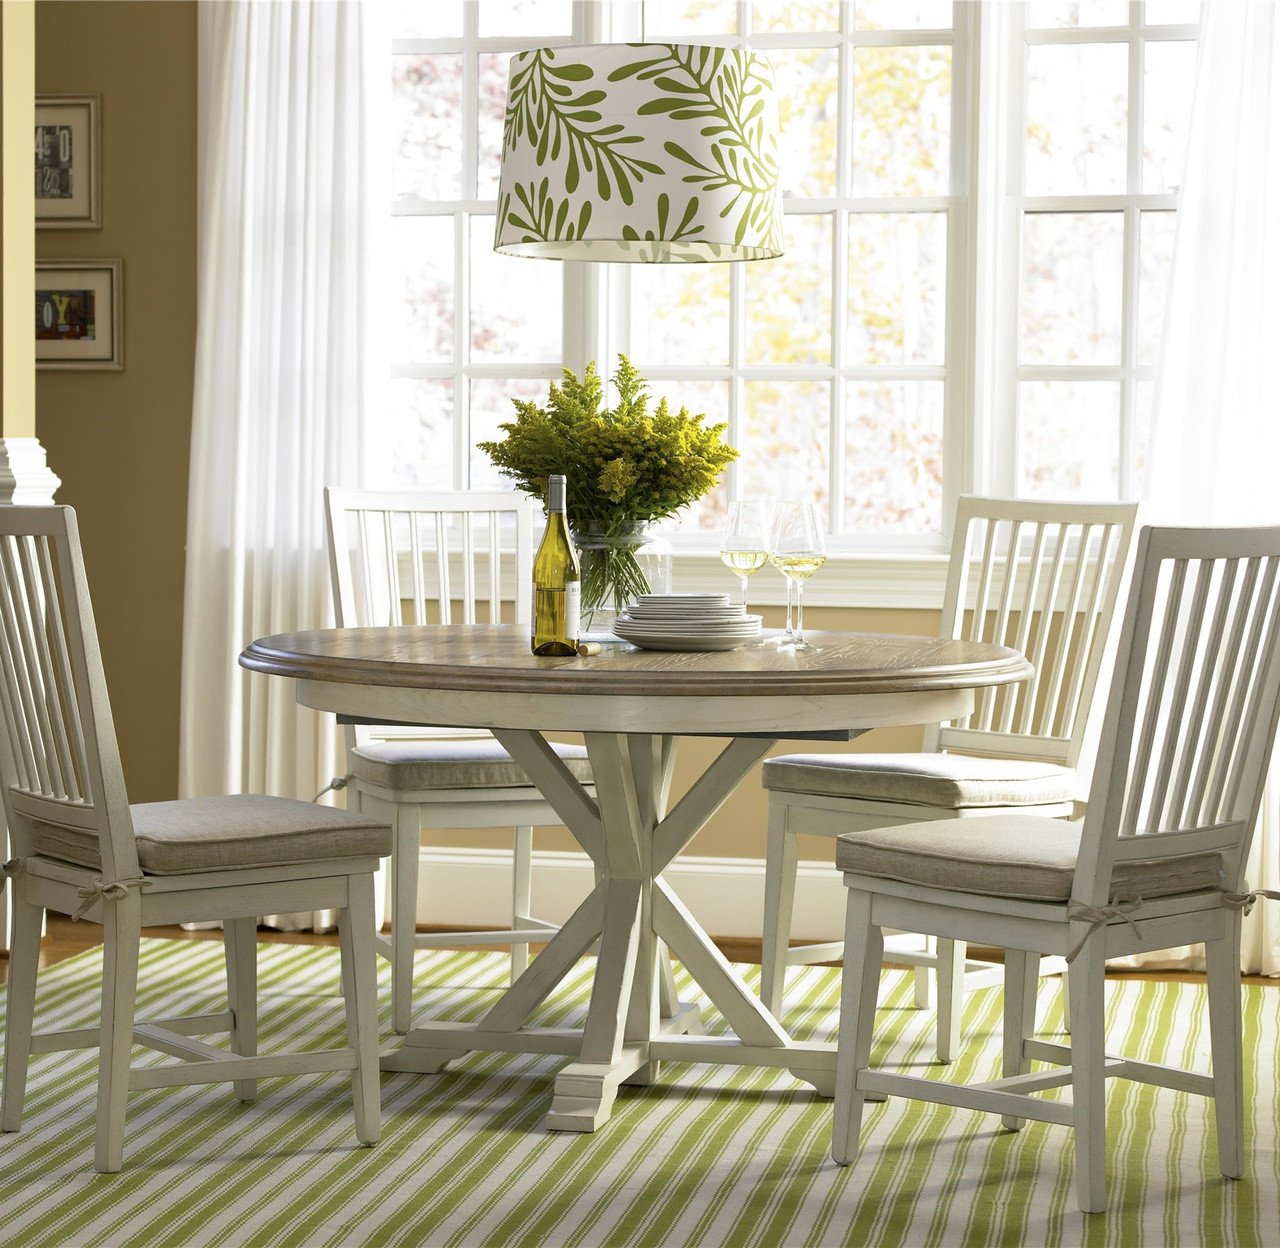 coastal beach white oak round dining room set | zin home